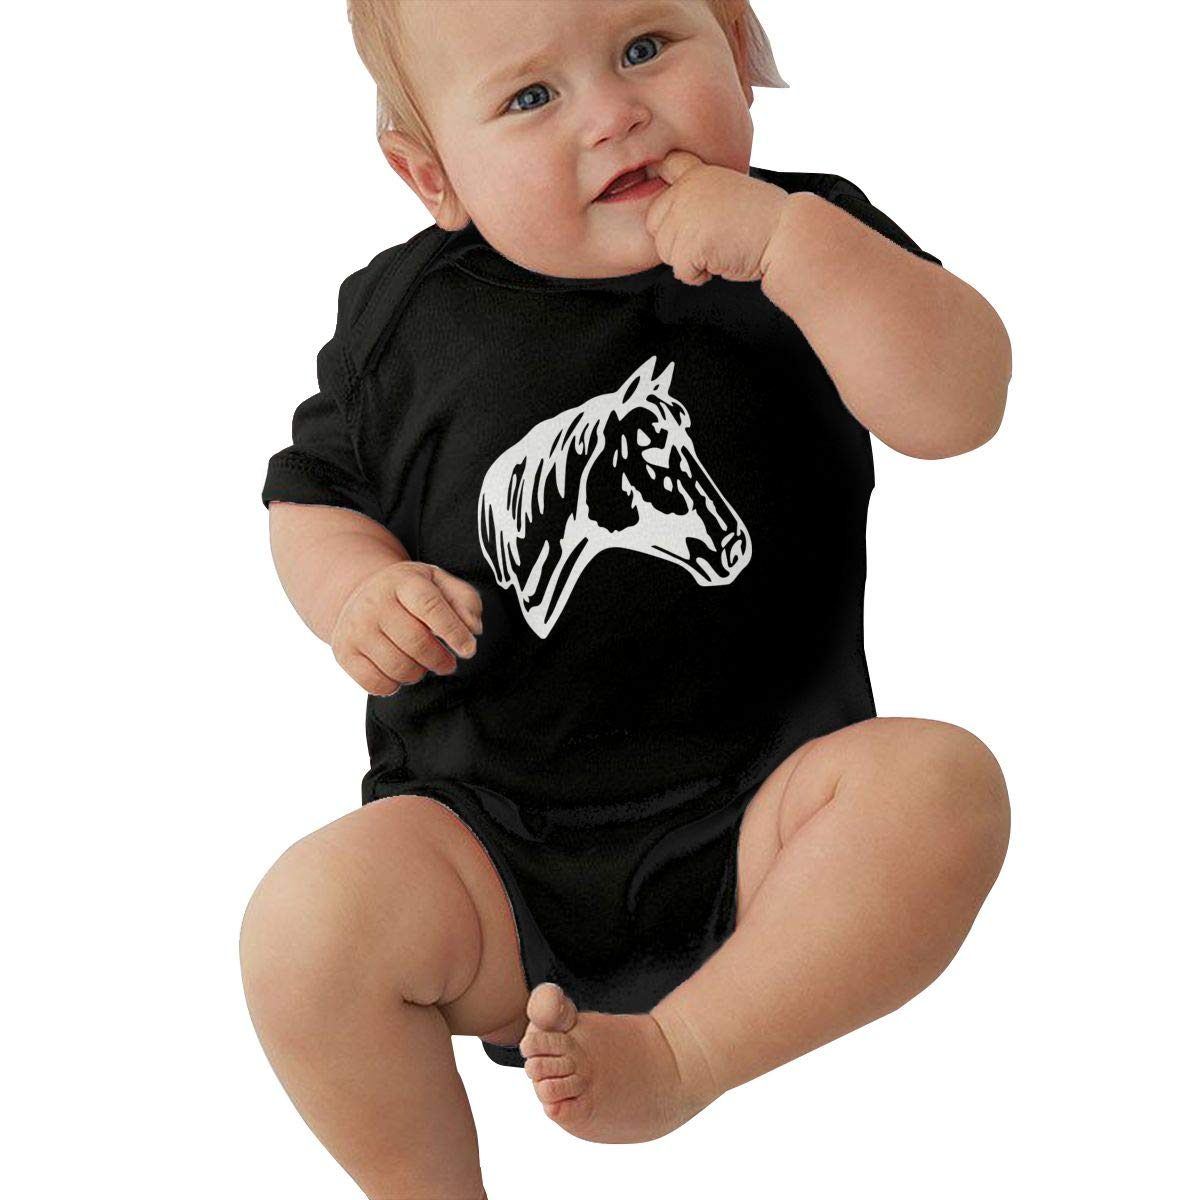 Horse Silhouette Toddler Baby Girl Boy Romper Jumpsuit Outfit Short Sleeve Bodysuit Tops Clothes